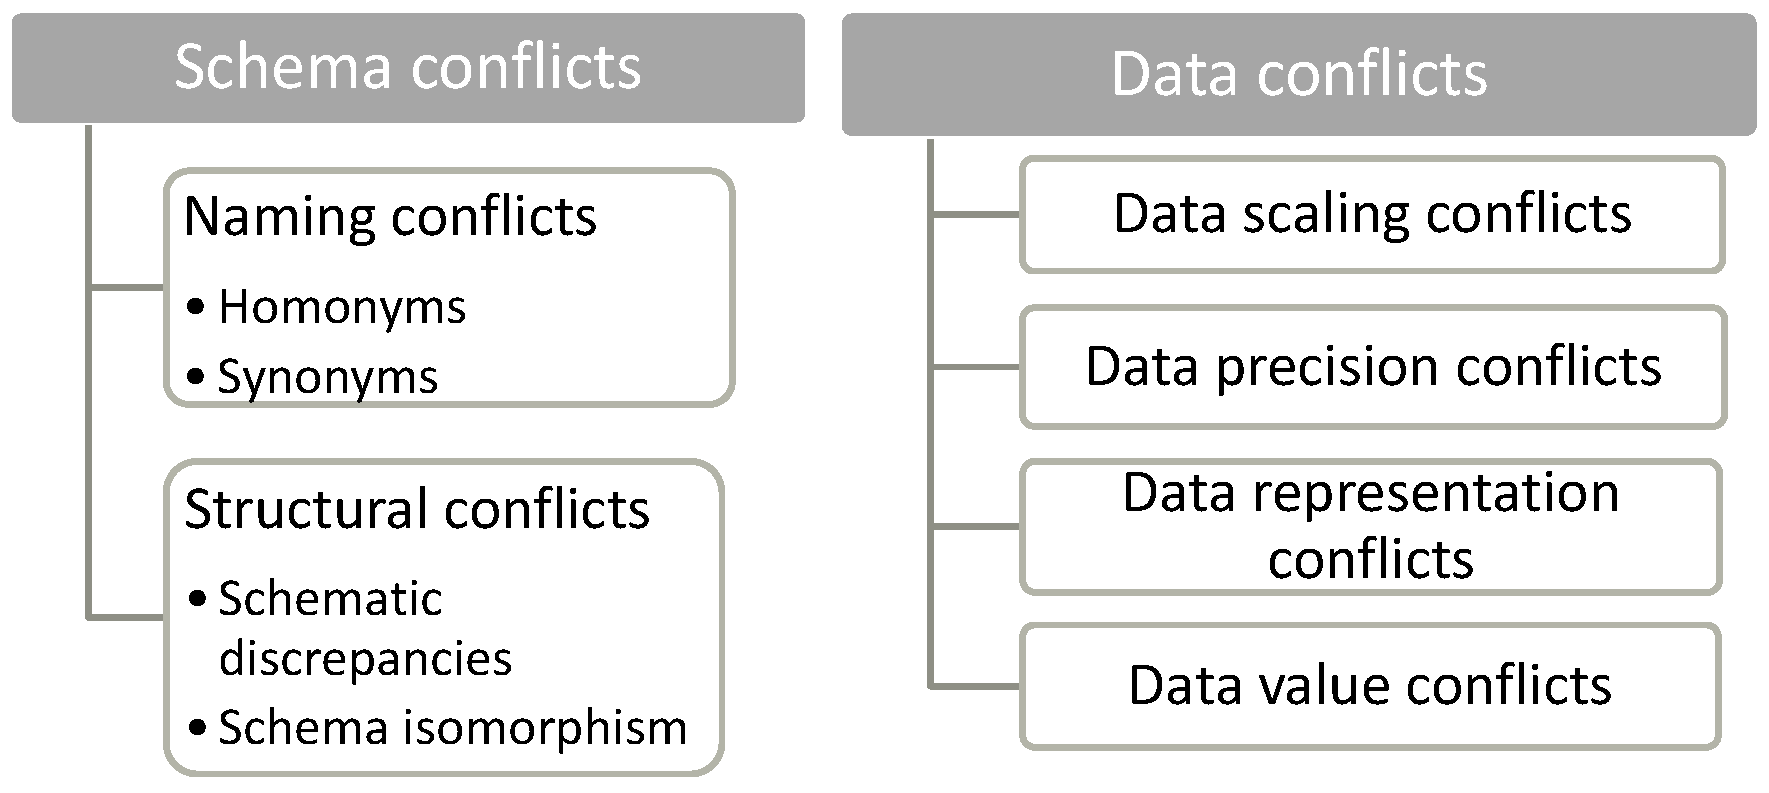 Information   Free Full-Text   Interoperability Conflicts in